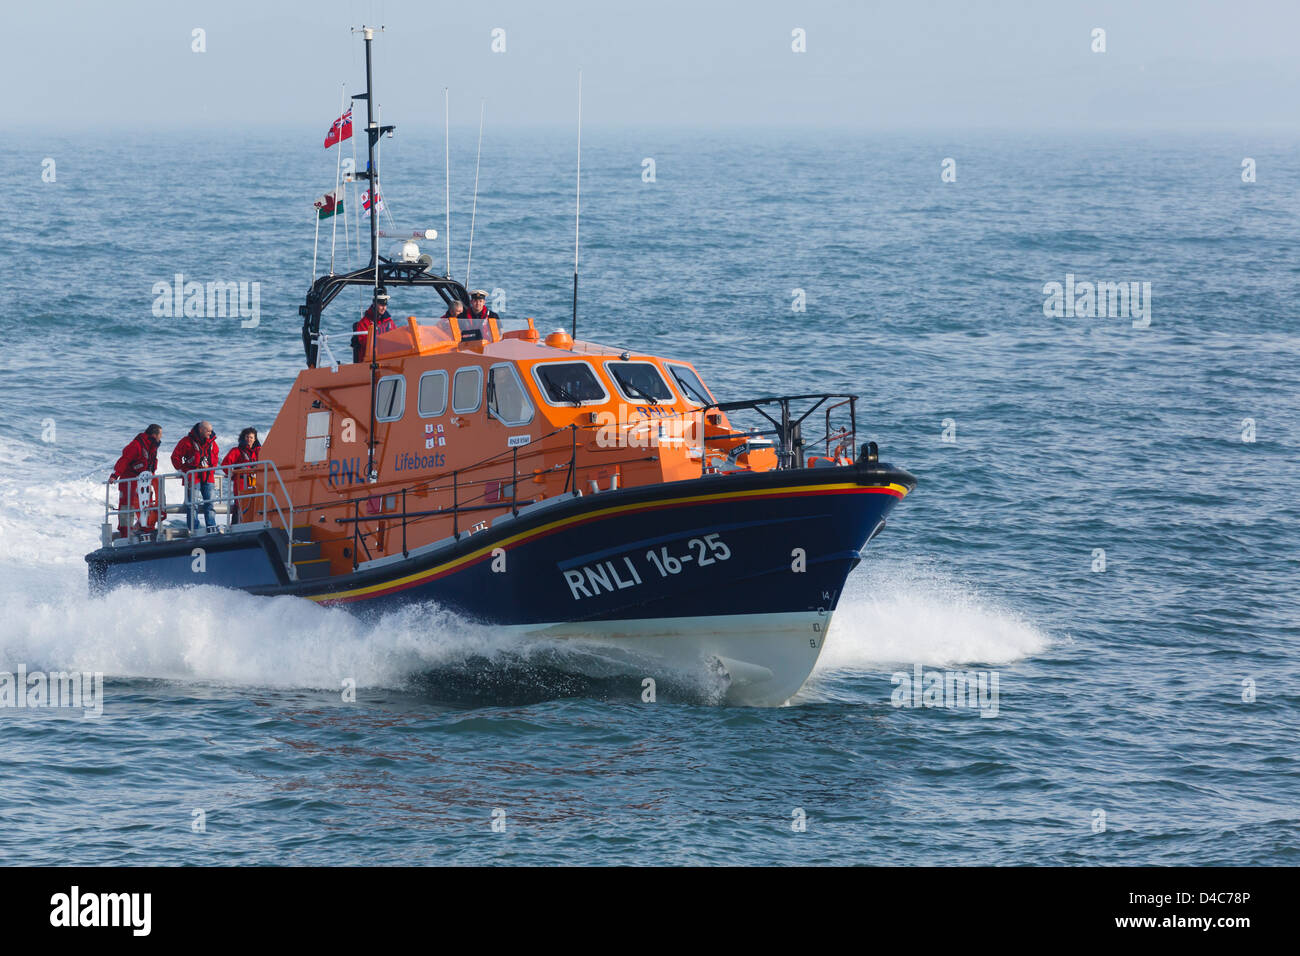 RNLI lifeboat crew at sea in new Tamar class vessel 'Kiwi' in Moelfre, Isle of Anglesey, North Wales, UK, - Stock Image